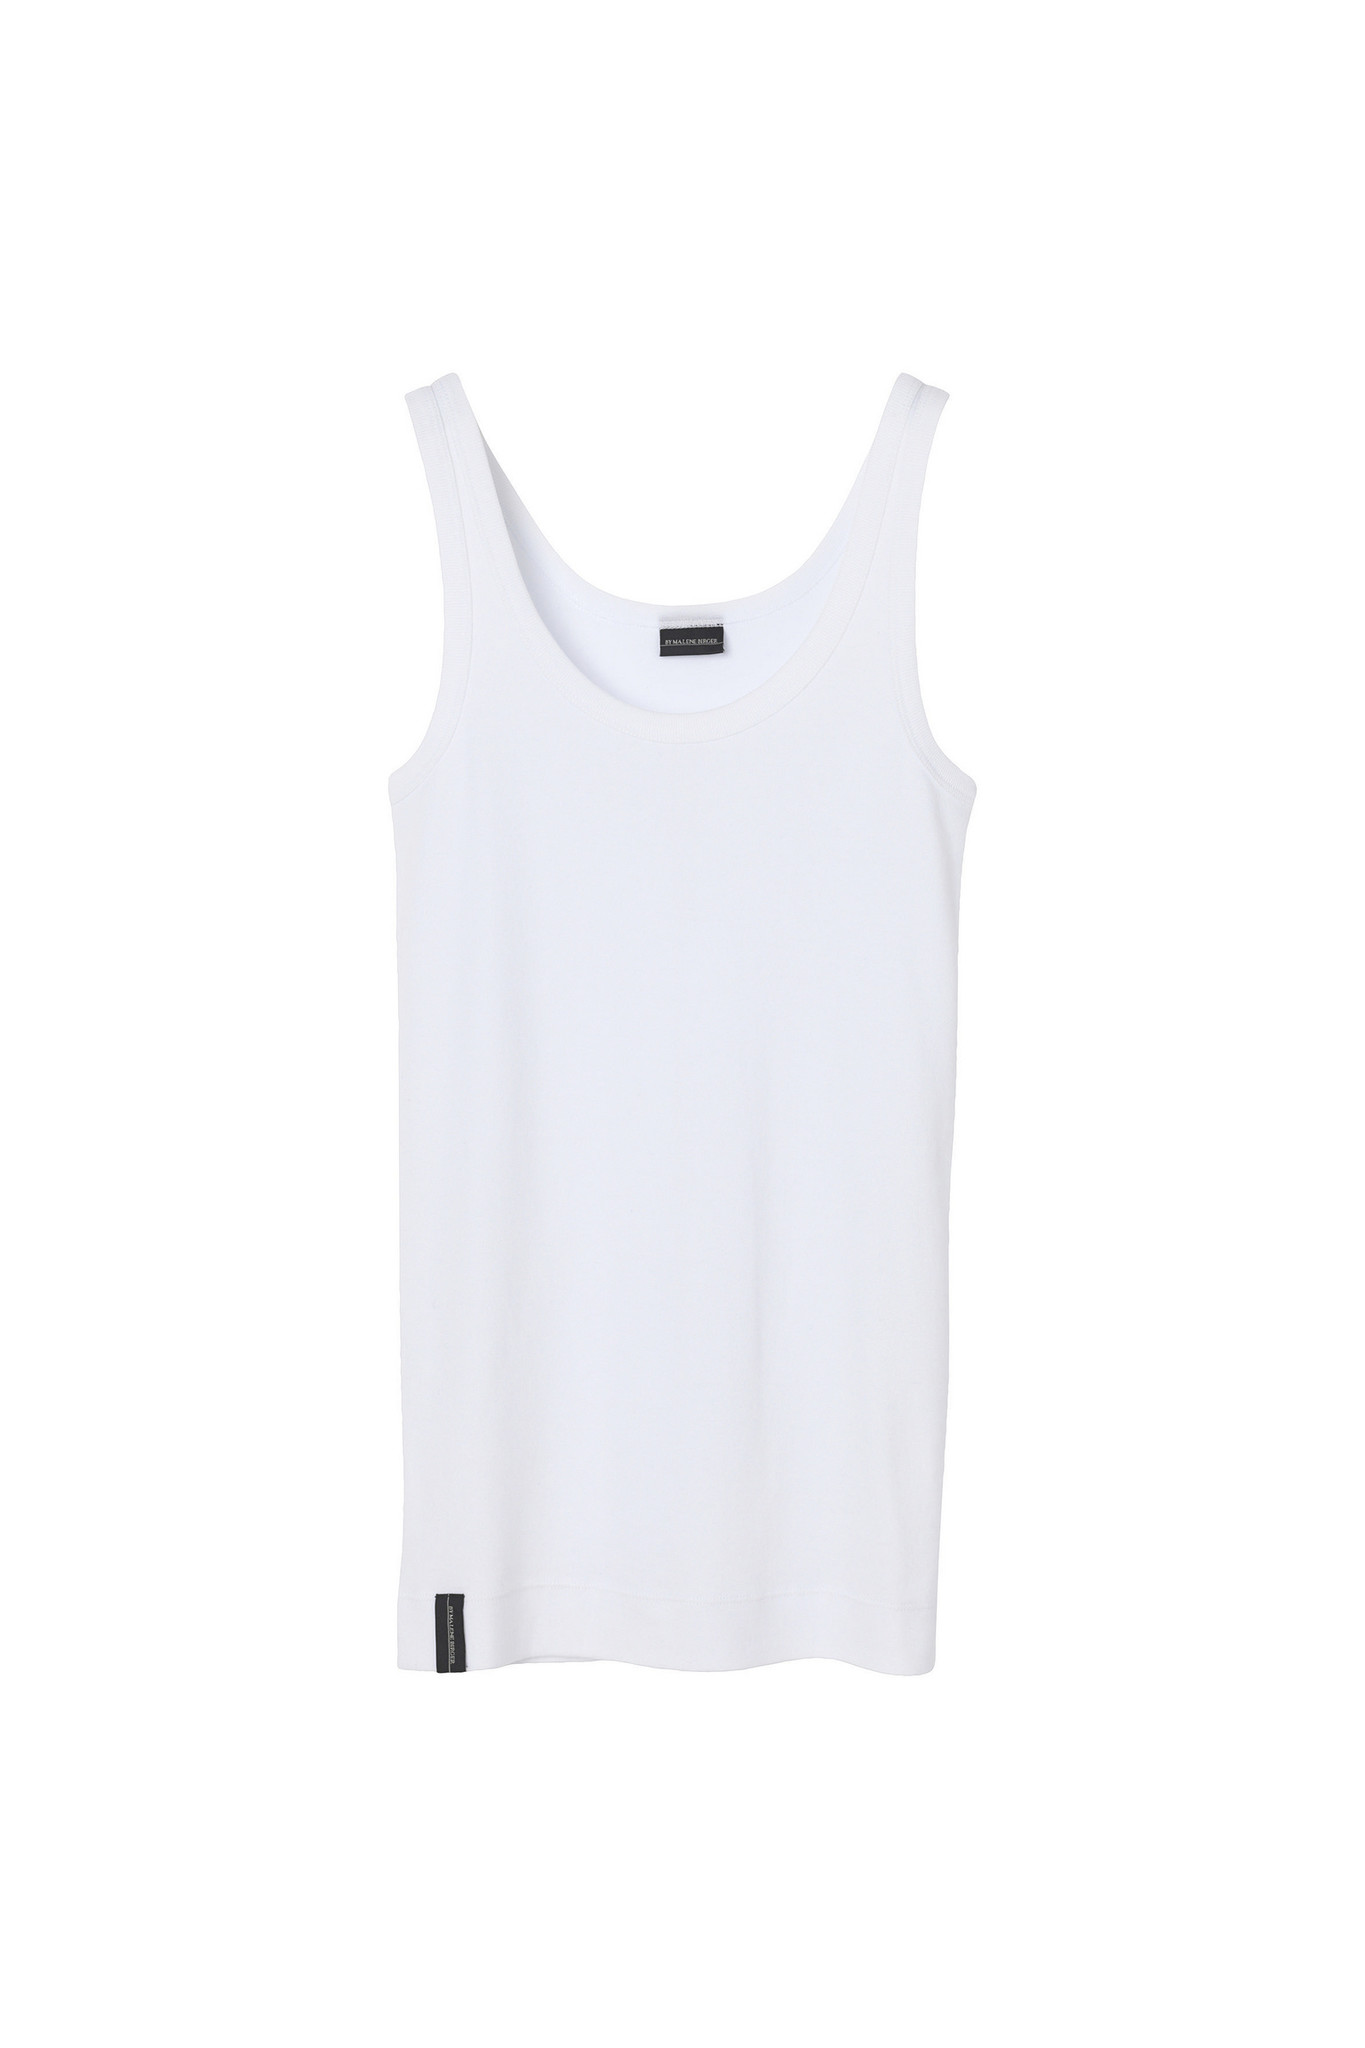 Newdawn Tank Top - Pure Wit-1